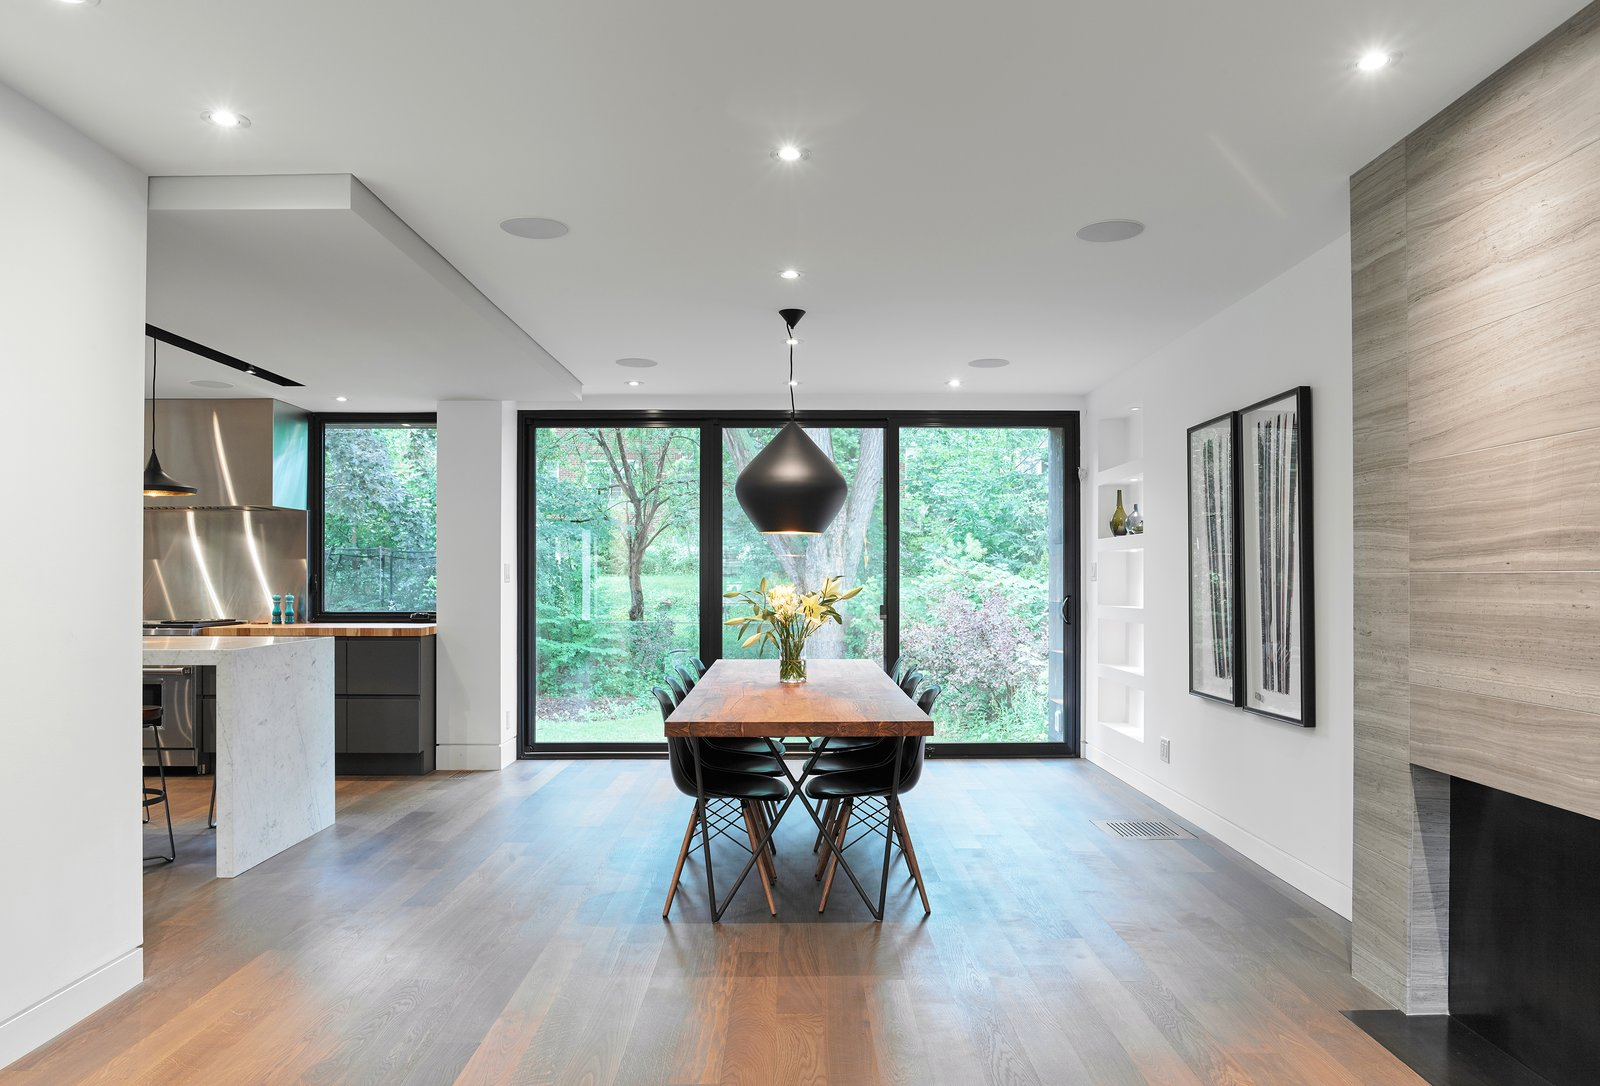 Dining, Standard Layout, Pendant, Table, Wood Burning, Medium Hardwood, Chair, Shelves, and Recessed  Best Dining Standard Layout Chair Table Medium Hardwood Photos from Hibou House